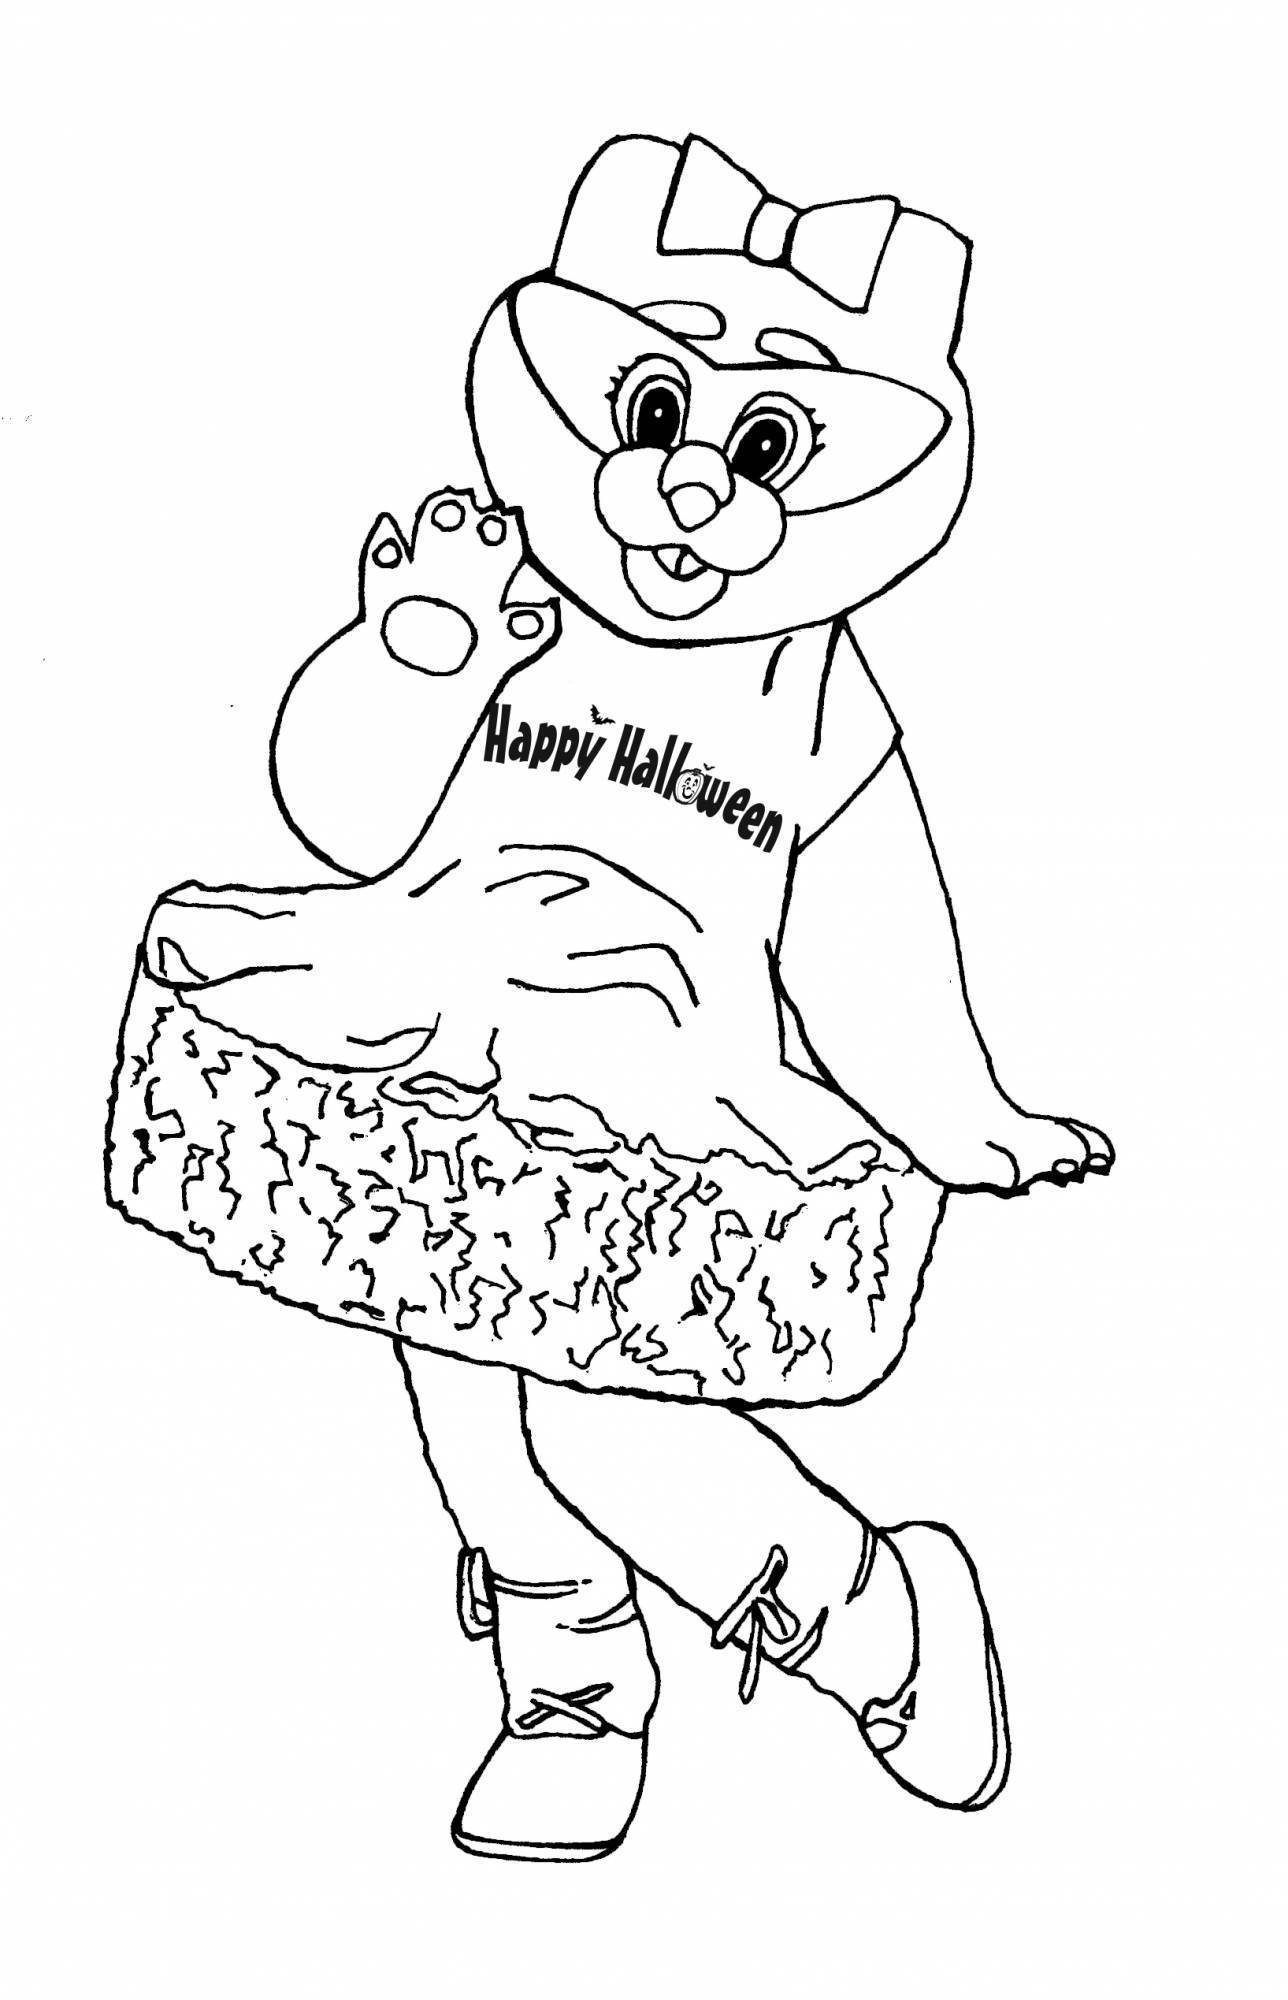 Kitty Claws Coloring Page